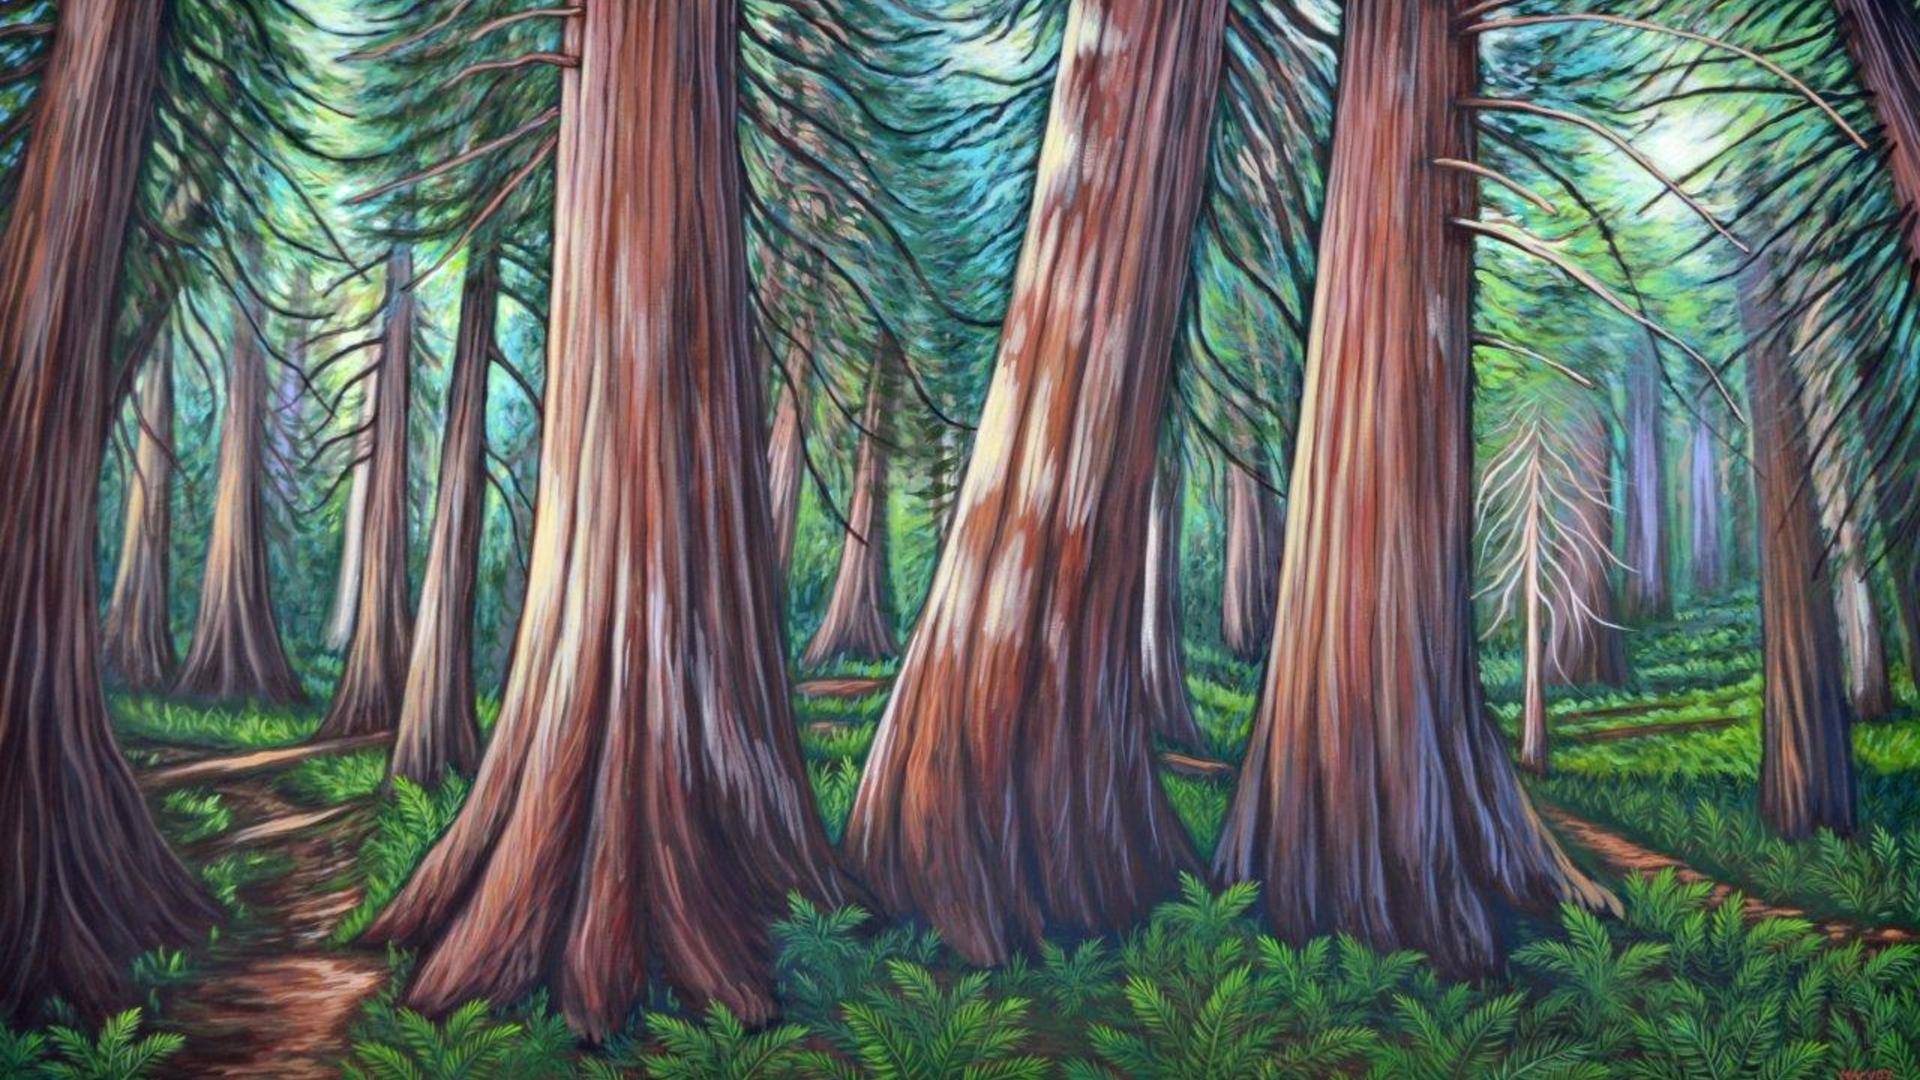 Melanie painting of trees